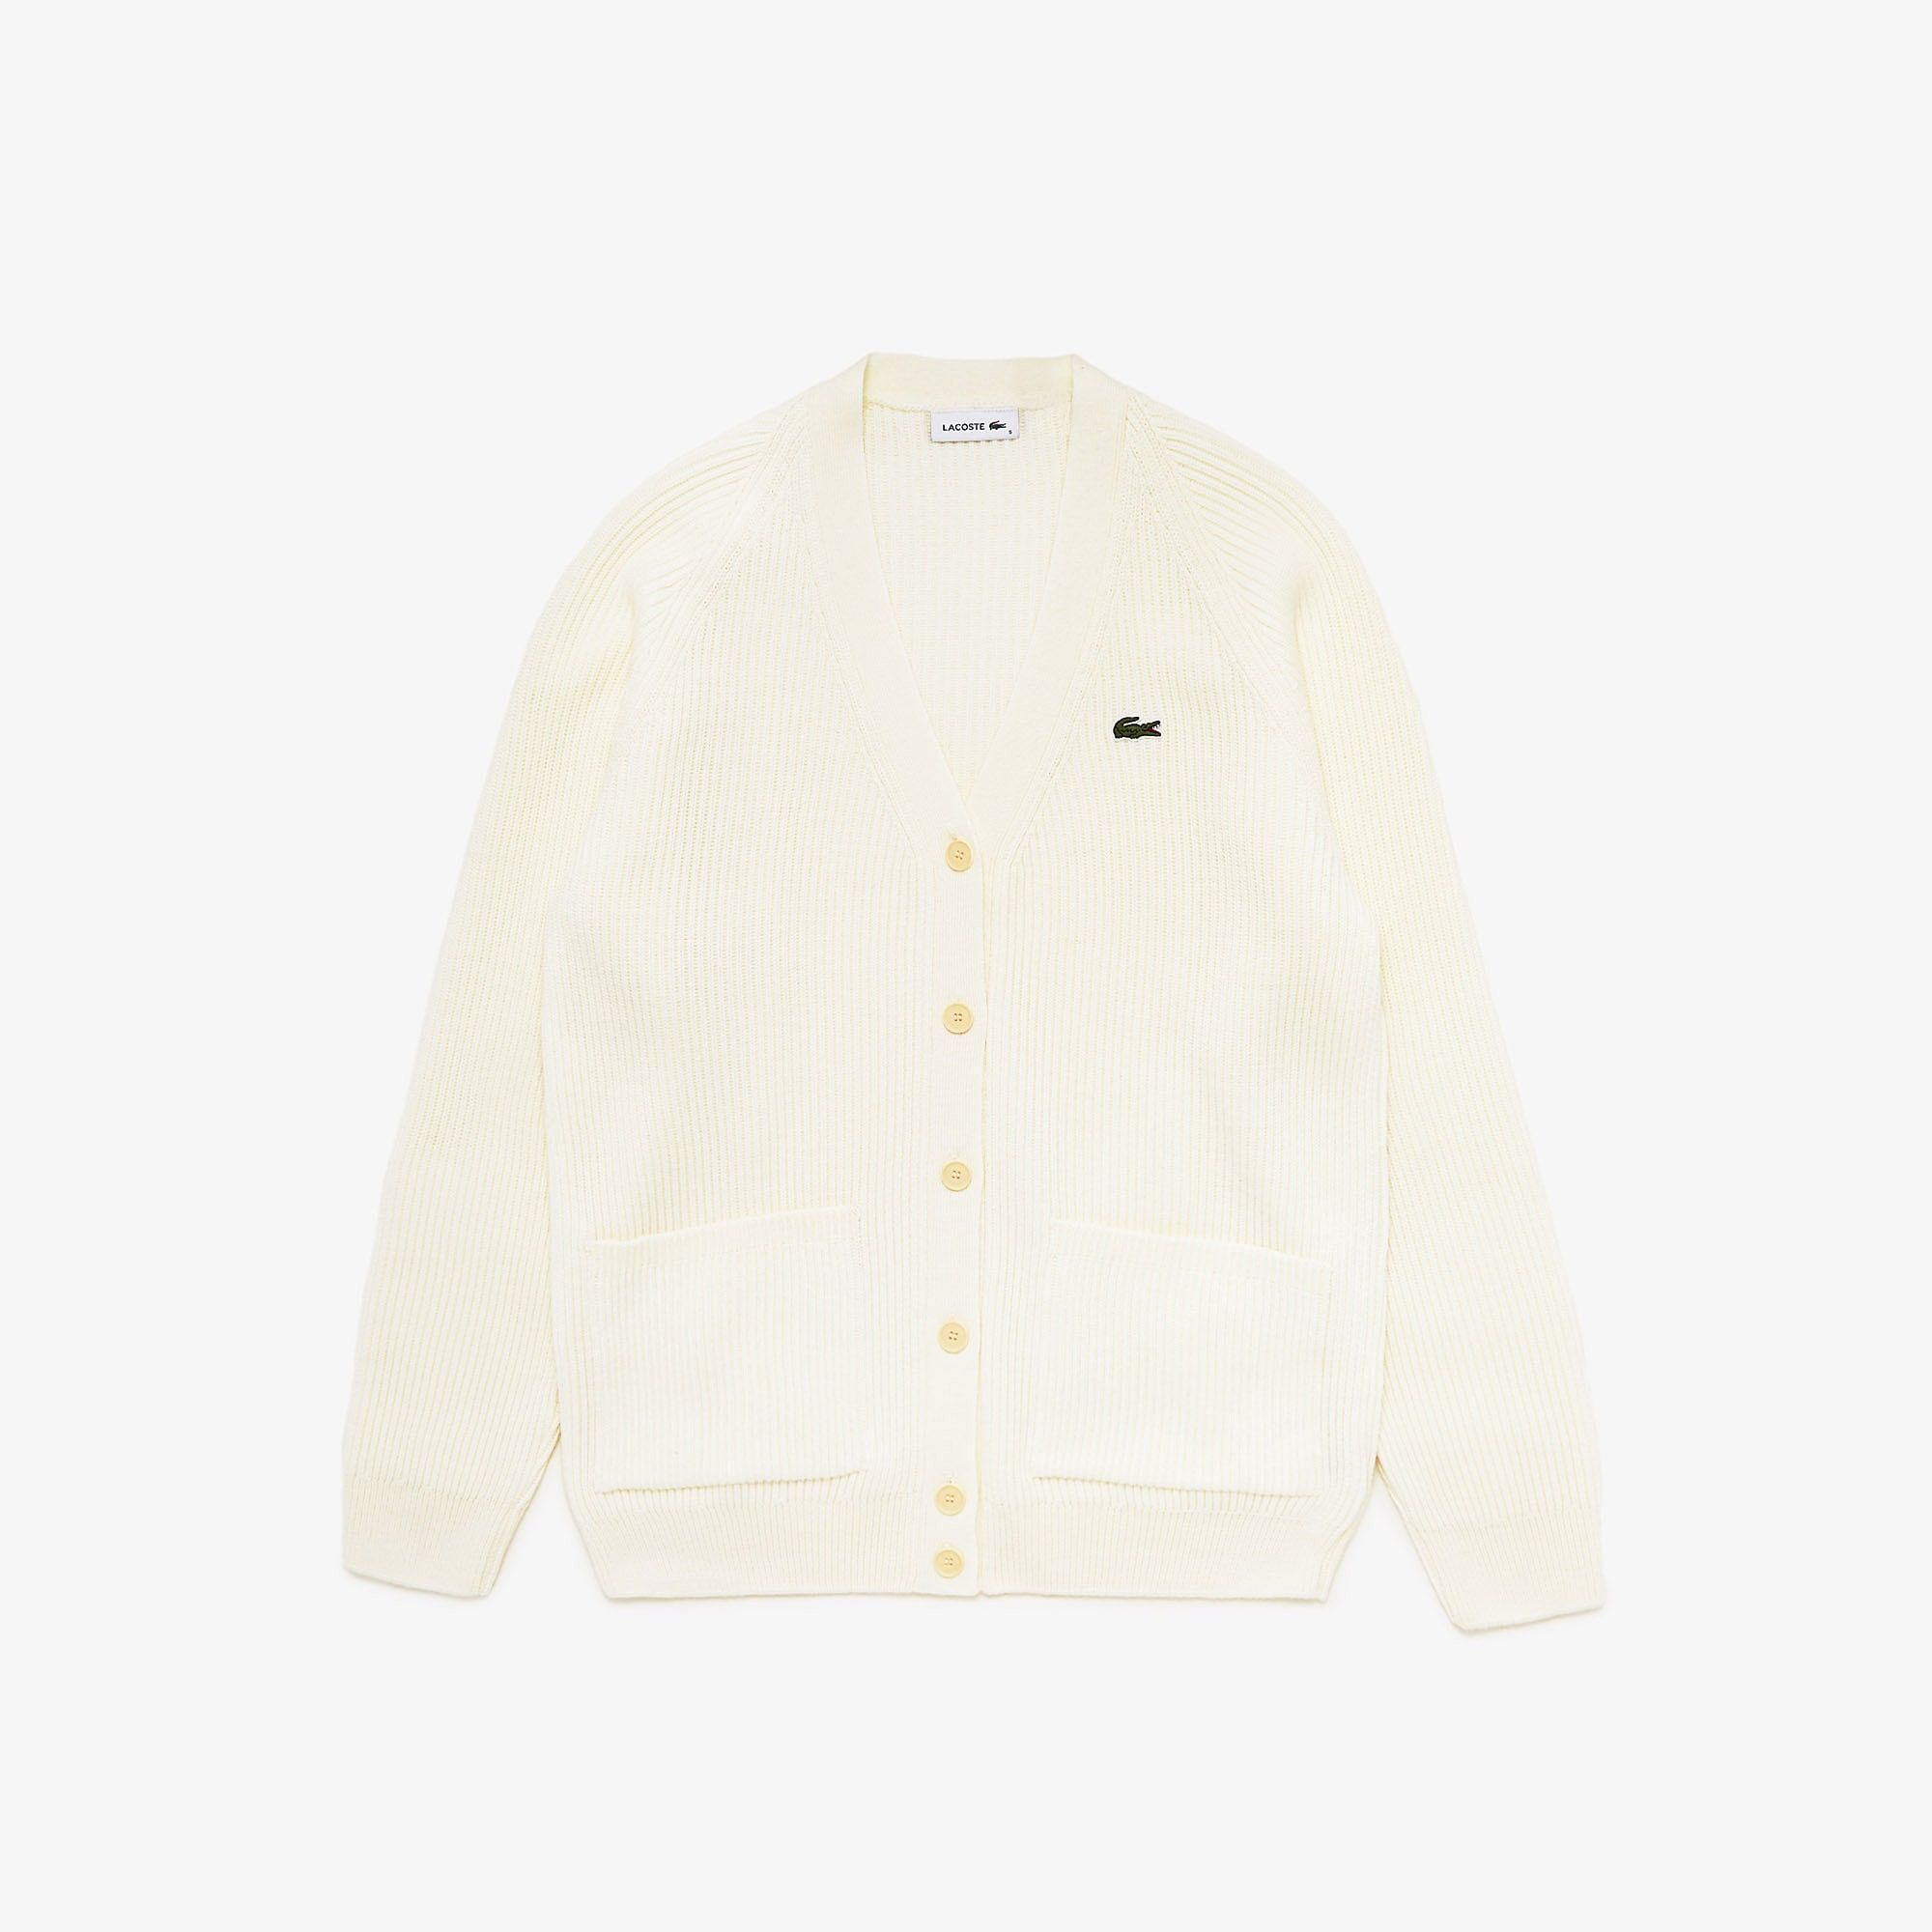 Lacoste Womens Ribbed Wool Blend V-neck Cardigan